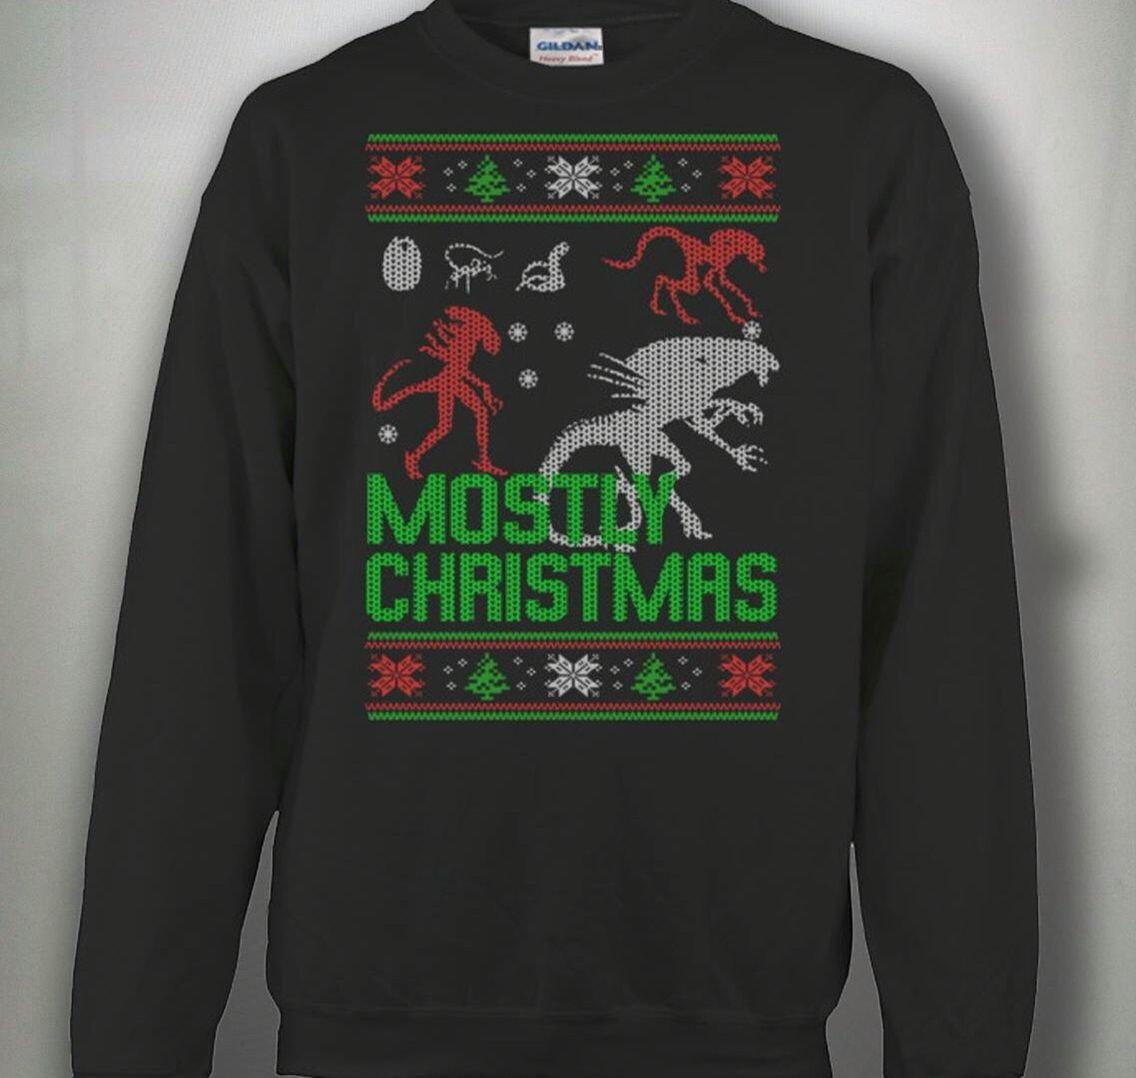 "Aliens"" Christmas Sweater 